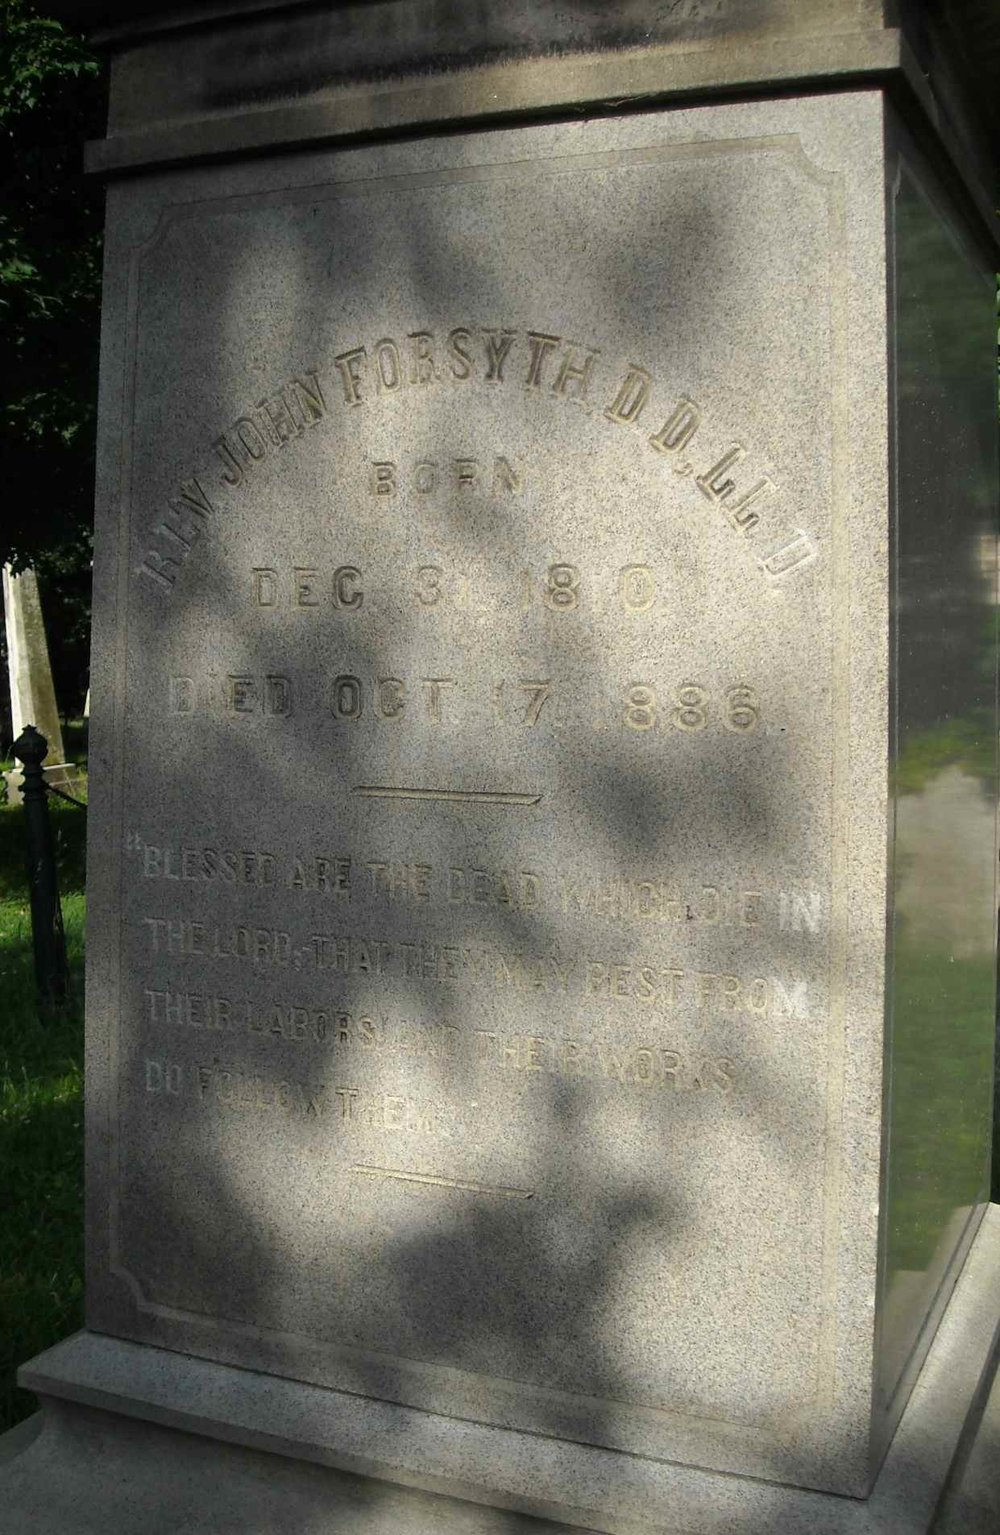 John Forsyth is buried at Old Town Cemetery, Newburgh, New York.